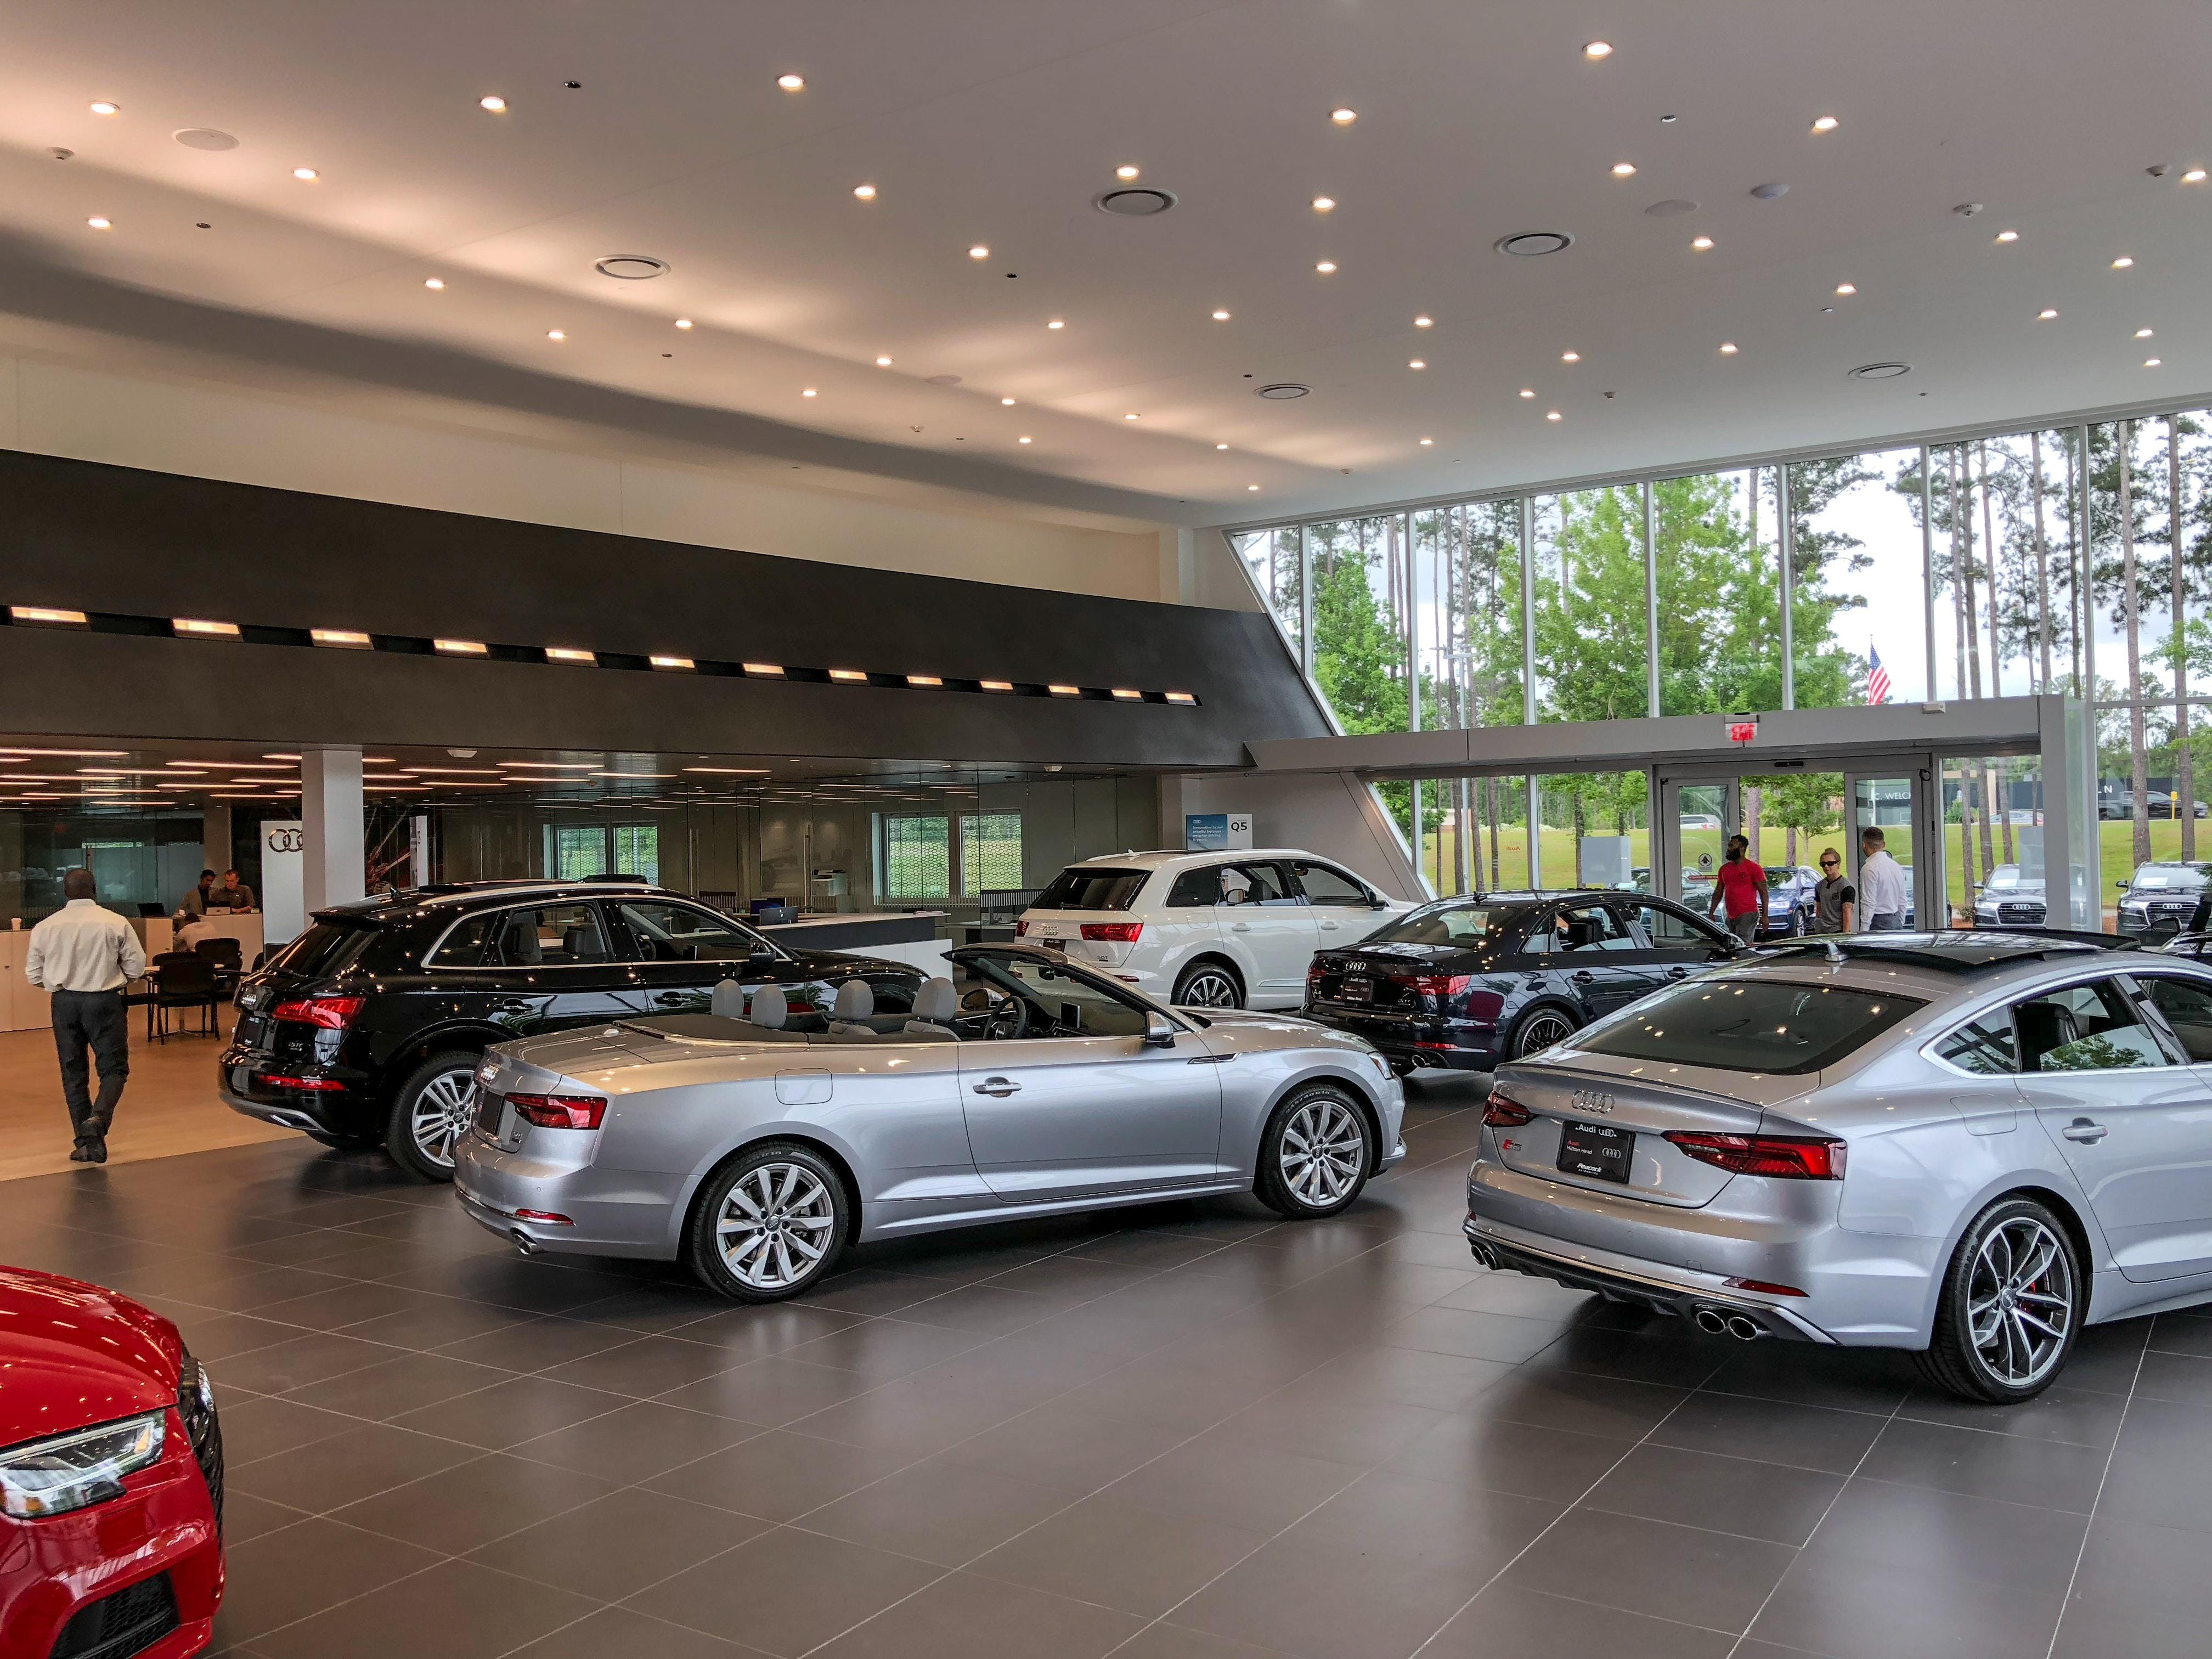 Audi Hilton Head Grand Opening OCT - Hilton head car show